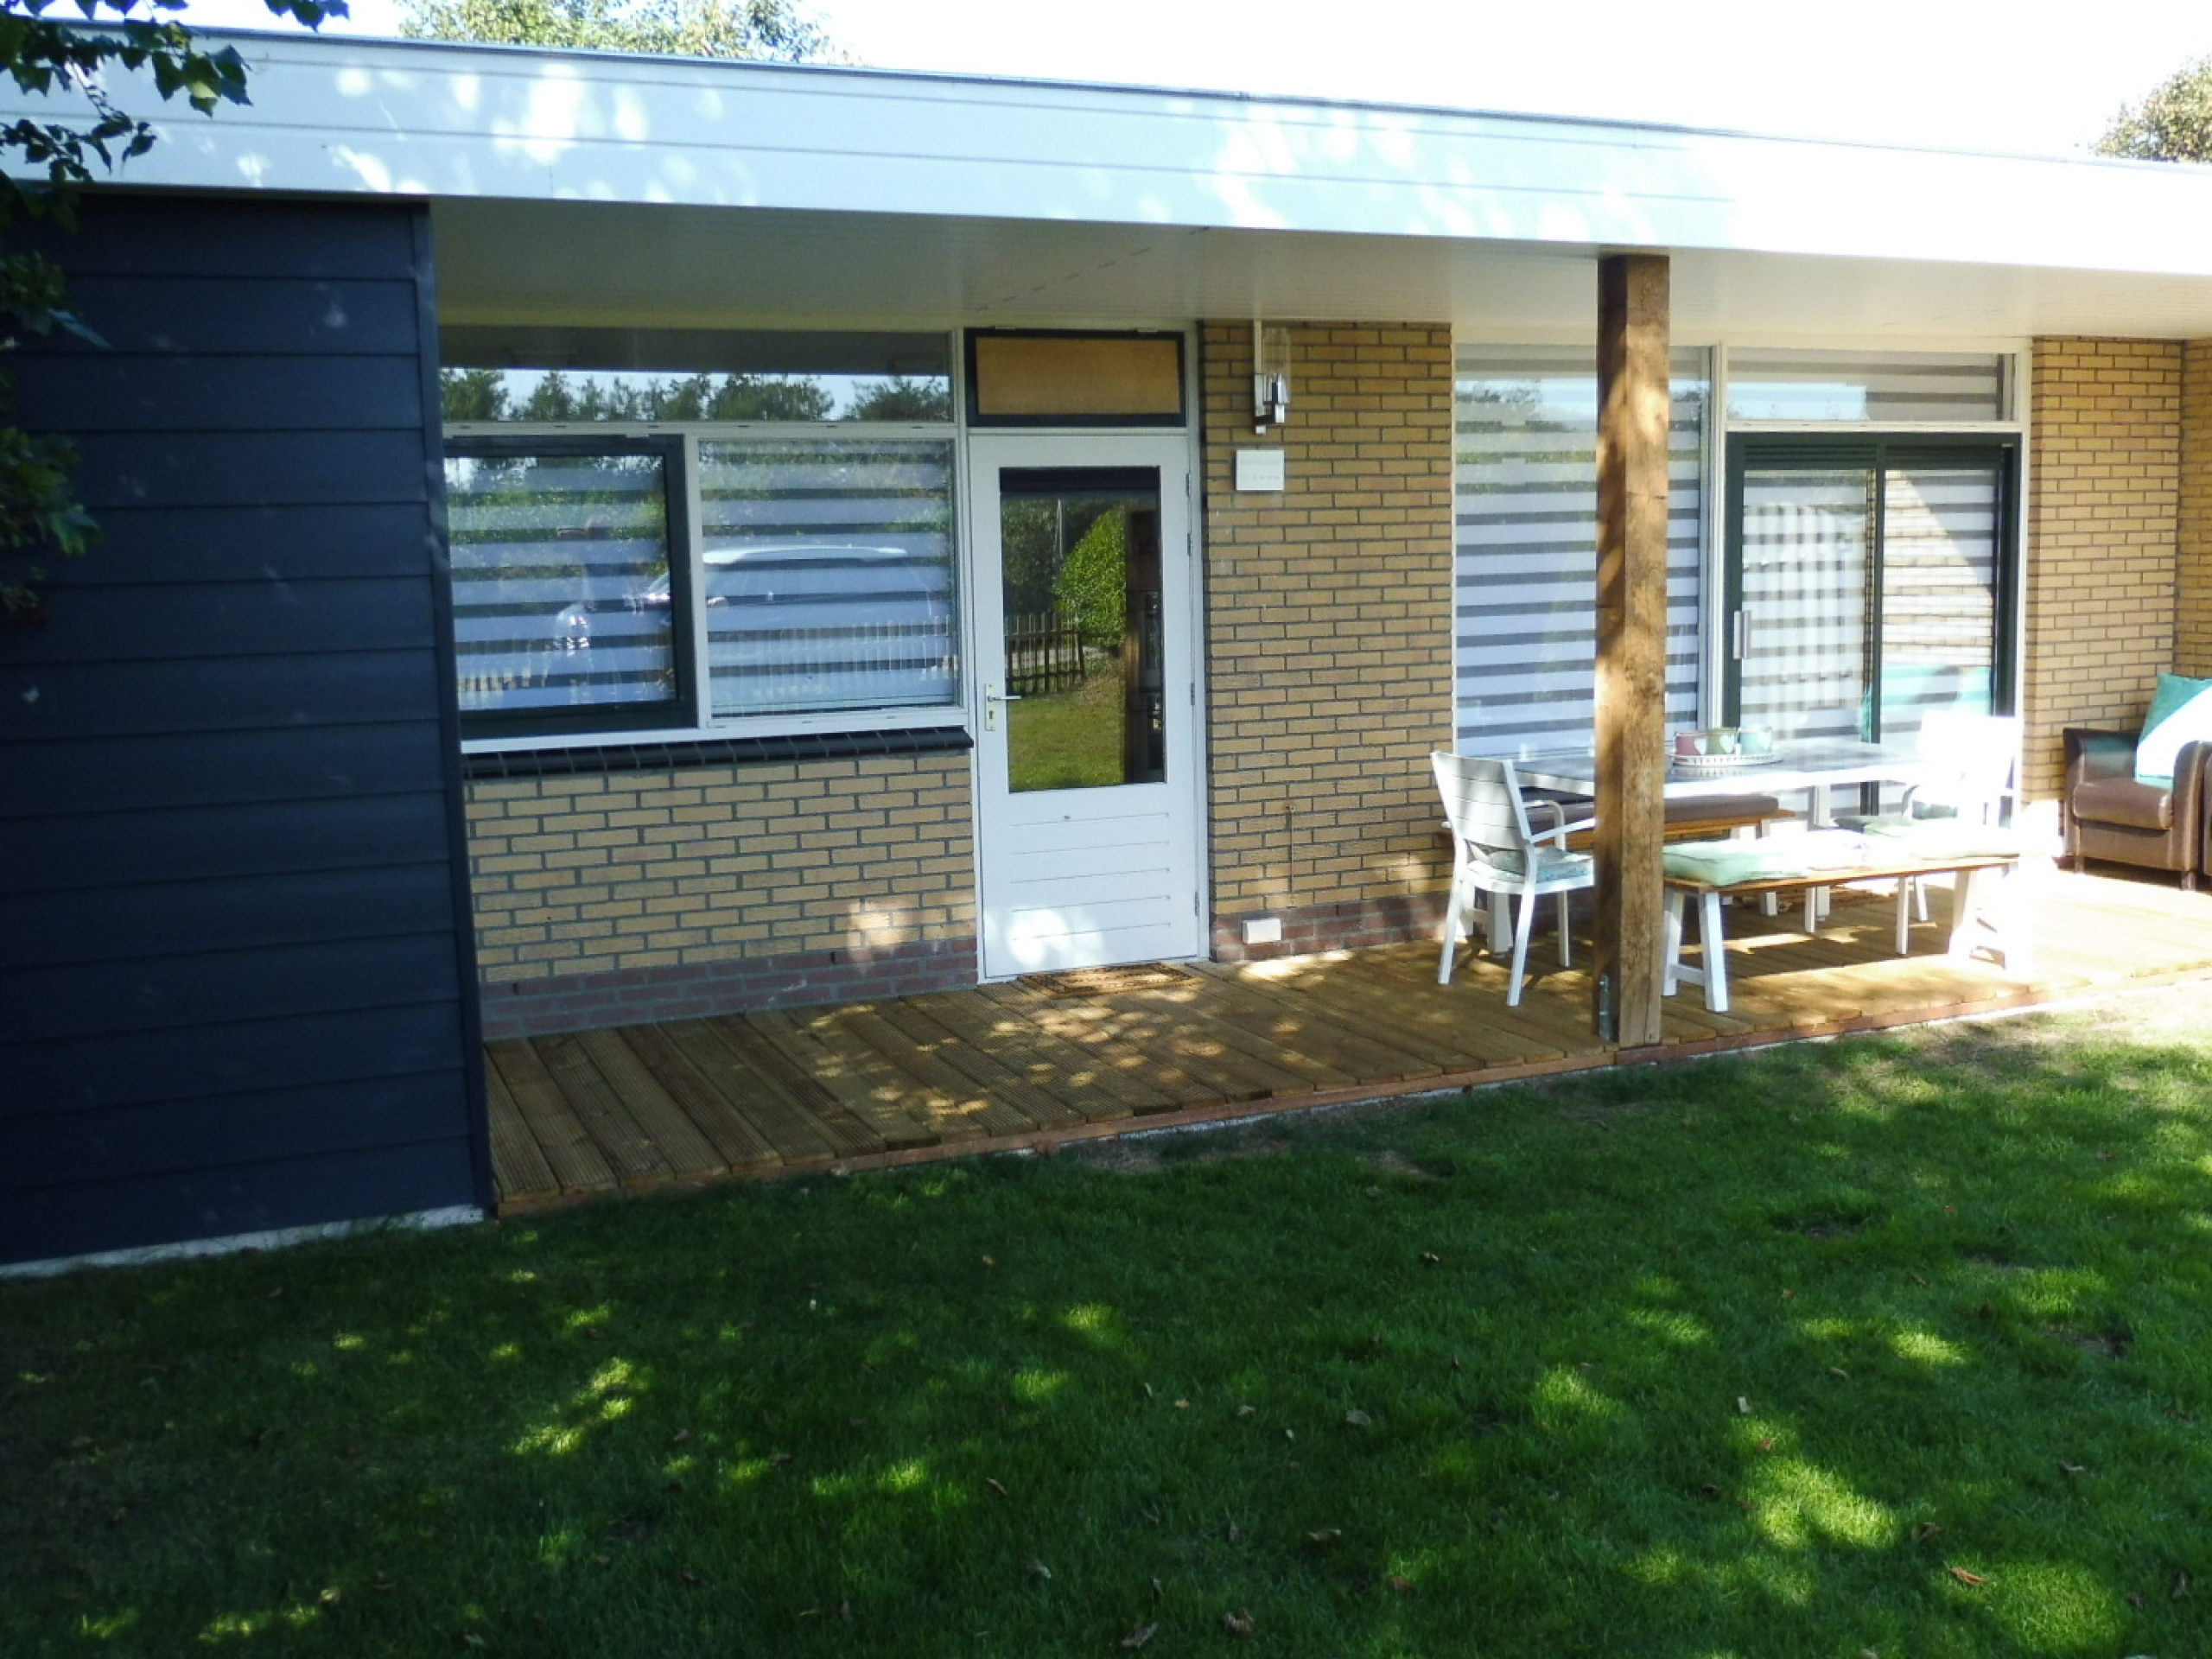 Enjoy a holiday within walking distance of De Slufter in this nice bungalow.